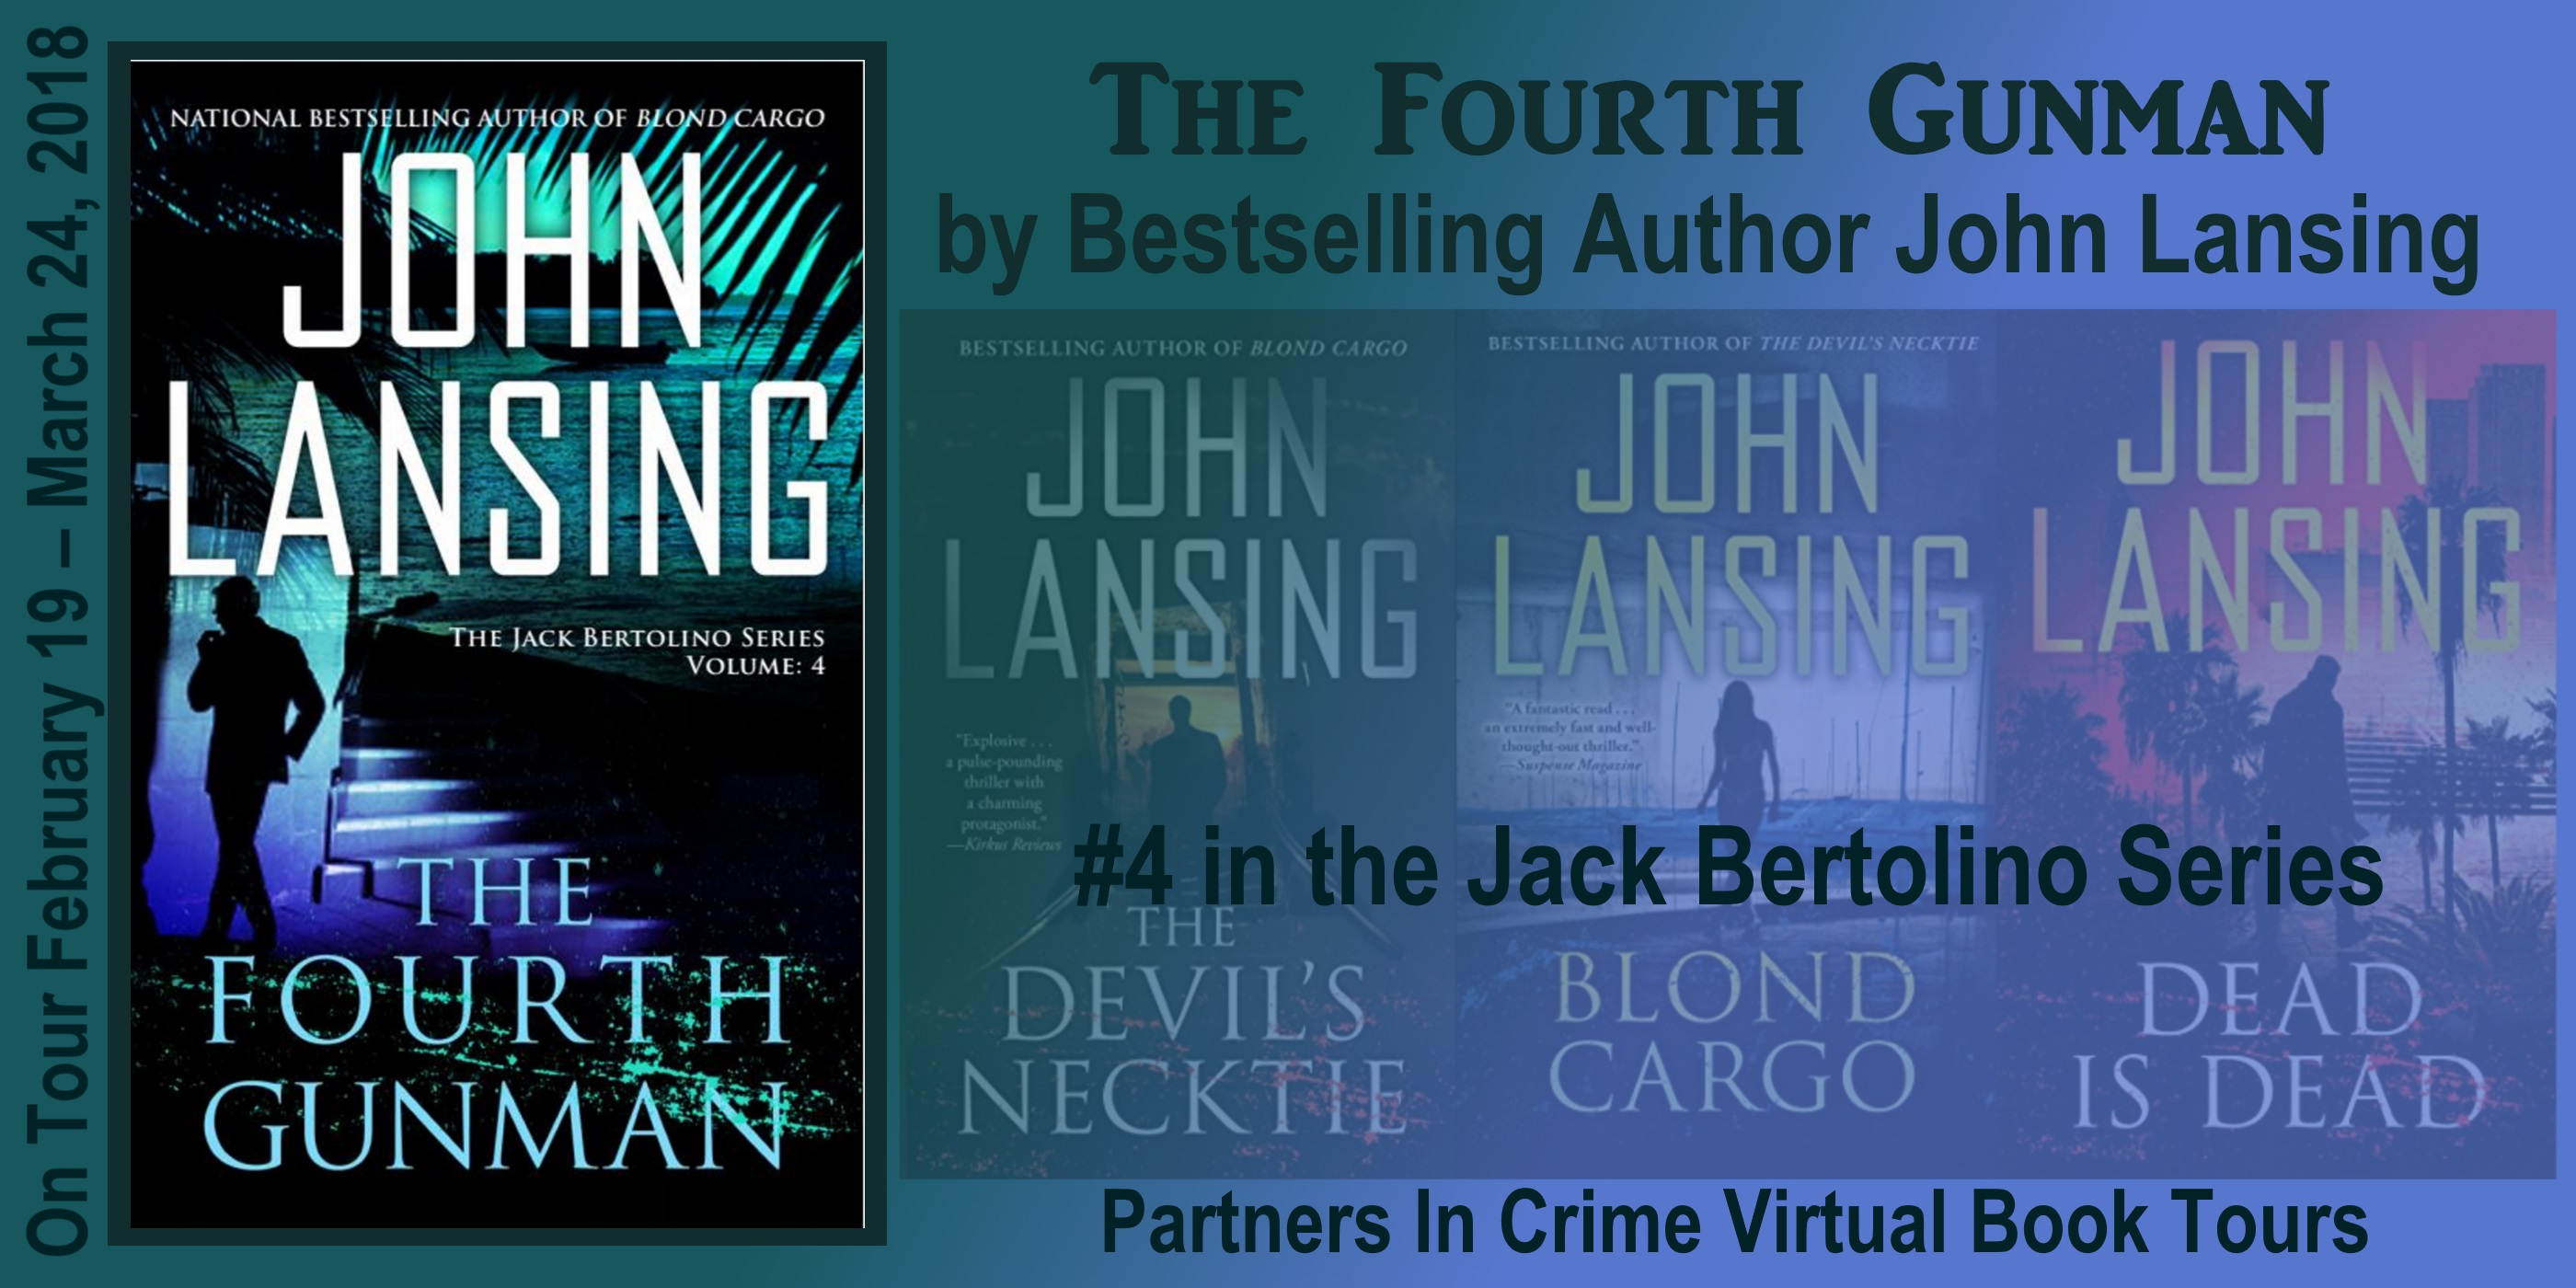 The Fourth Gunman by John Lansing Banner